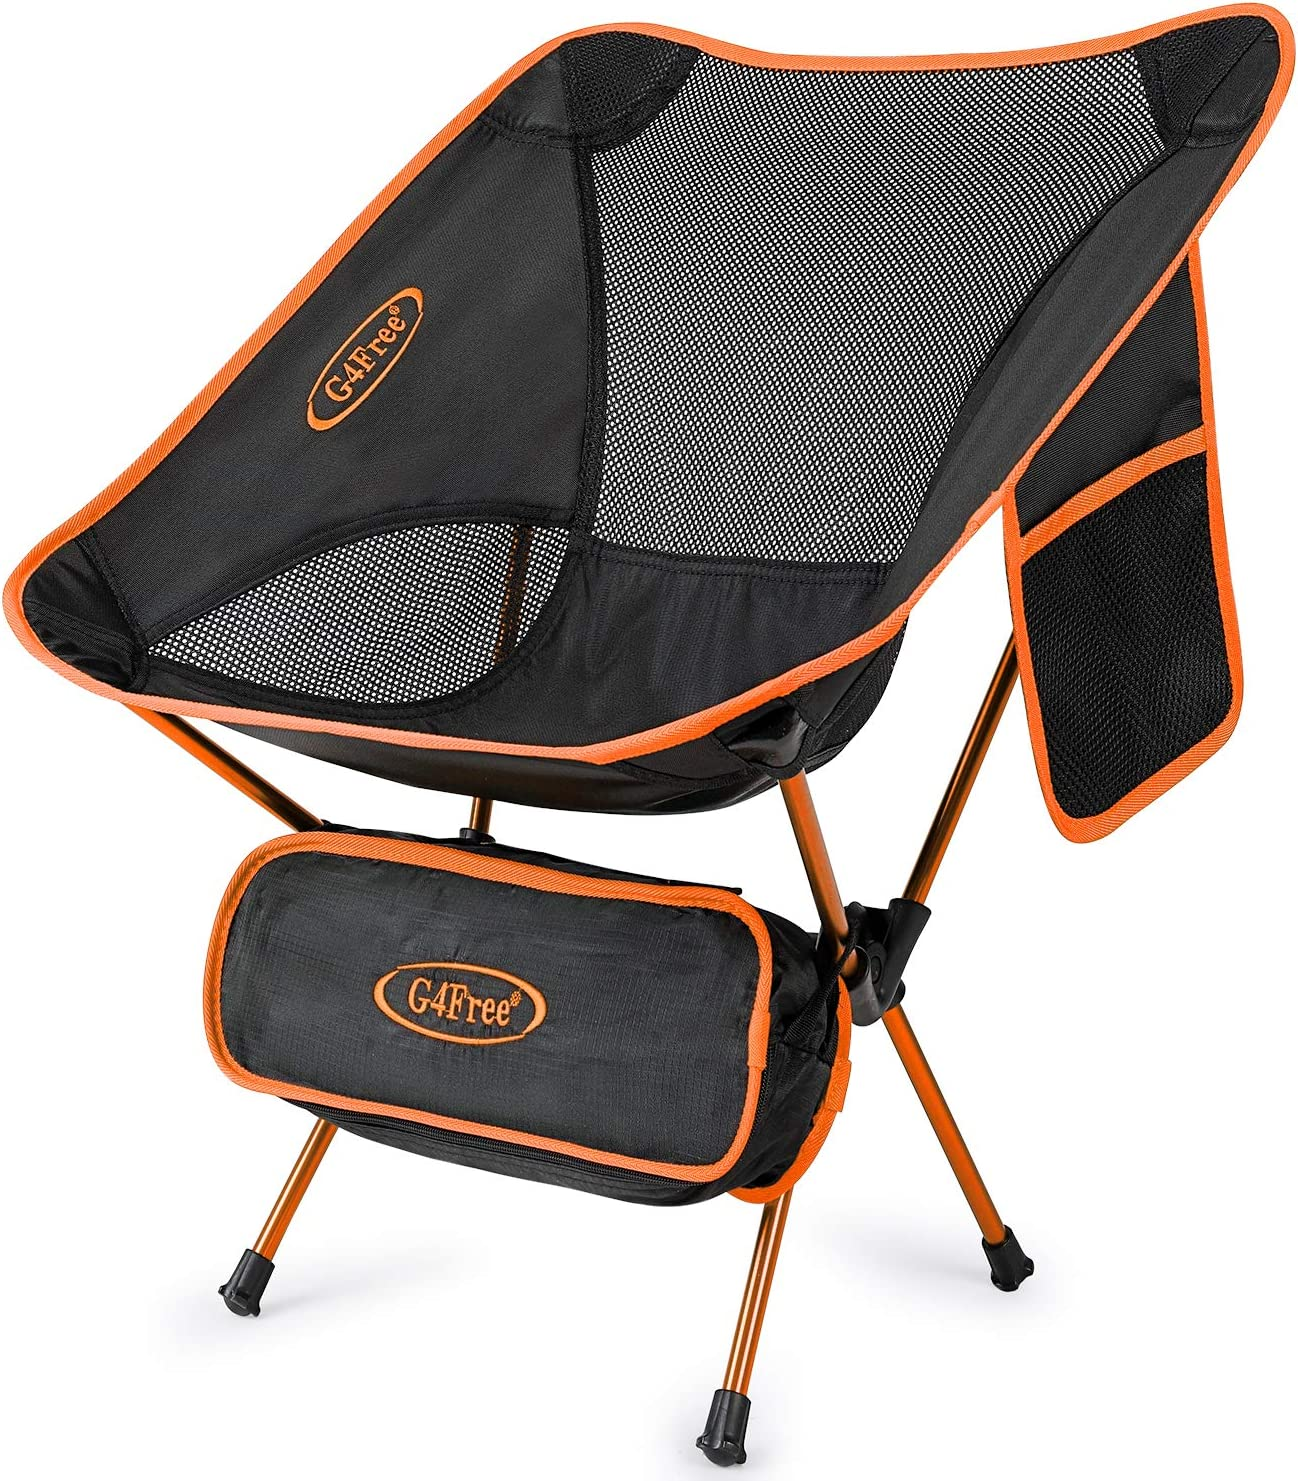 BBQ Ultralight Portable Folding Chair Compact Heavy Duty with Carry Bag for Outdoor Picnic Hiking Camp Backpacking G4Free Upgraded Camping Chairs